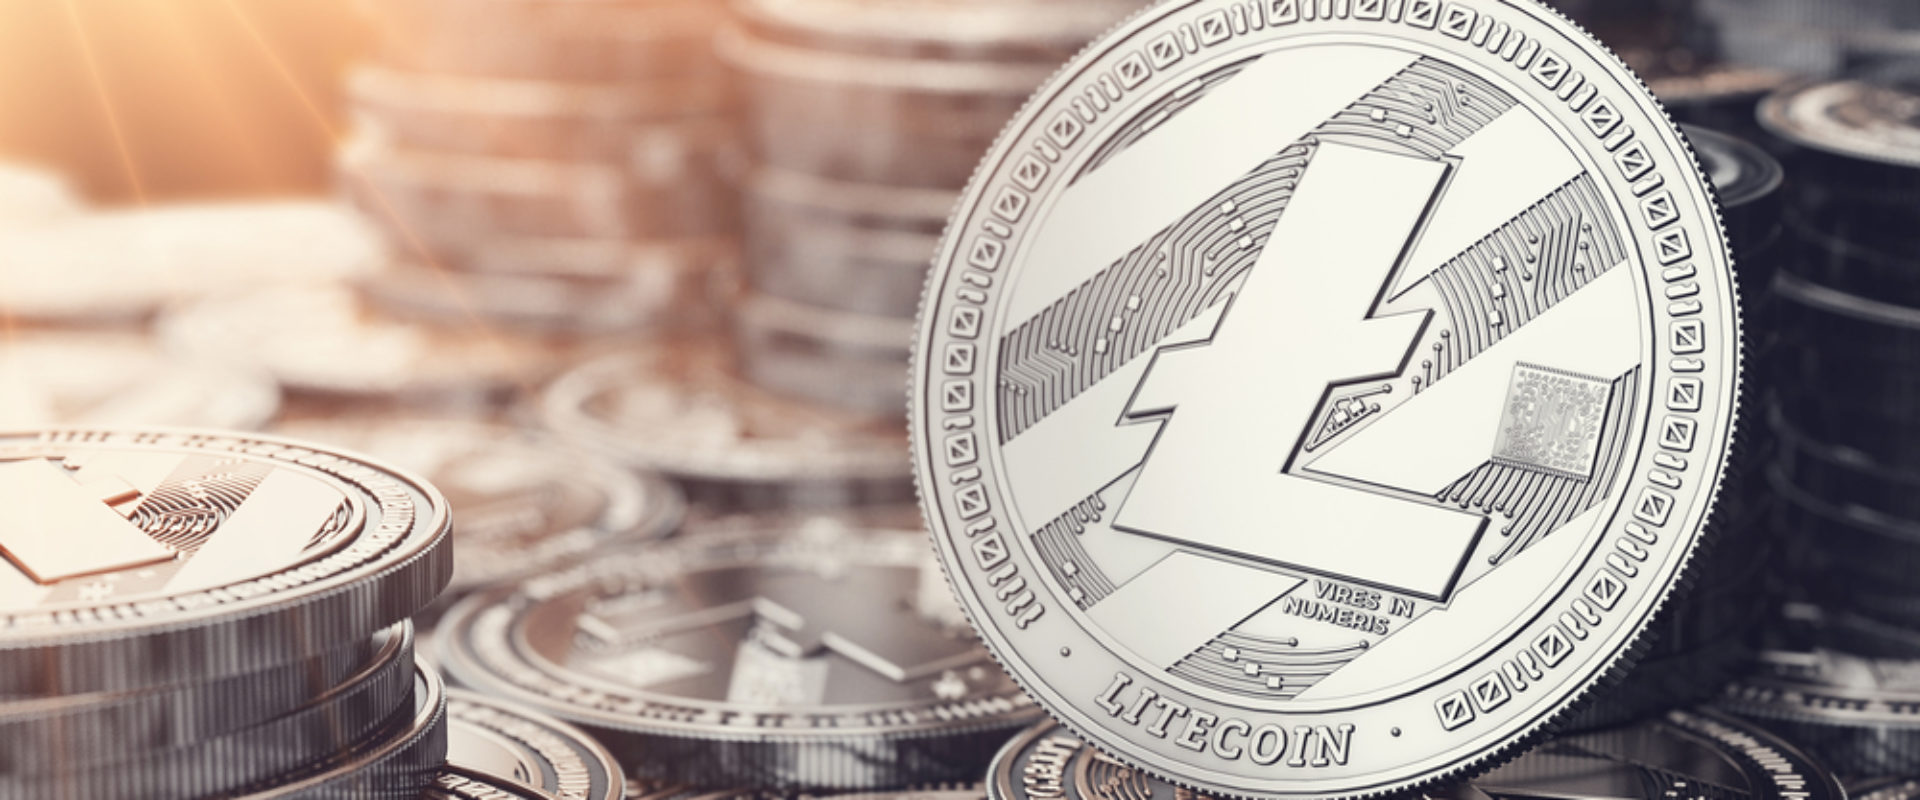 Analysts Expect Litecoin to Incur Further Gains Despite Crypto Market Downturn, Here's Why